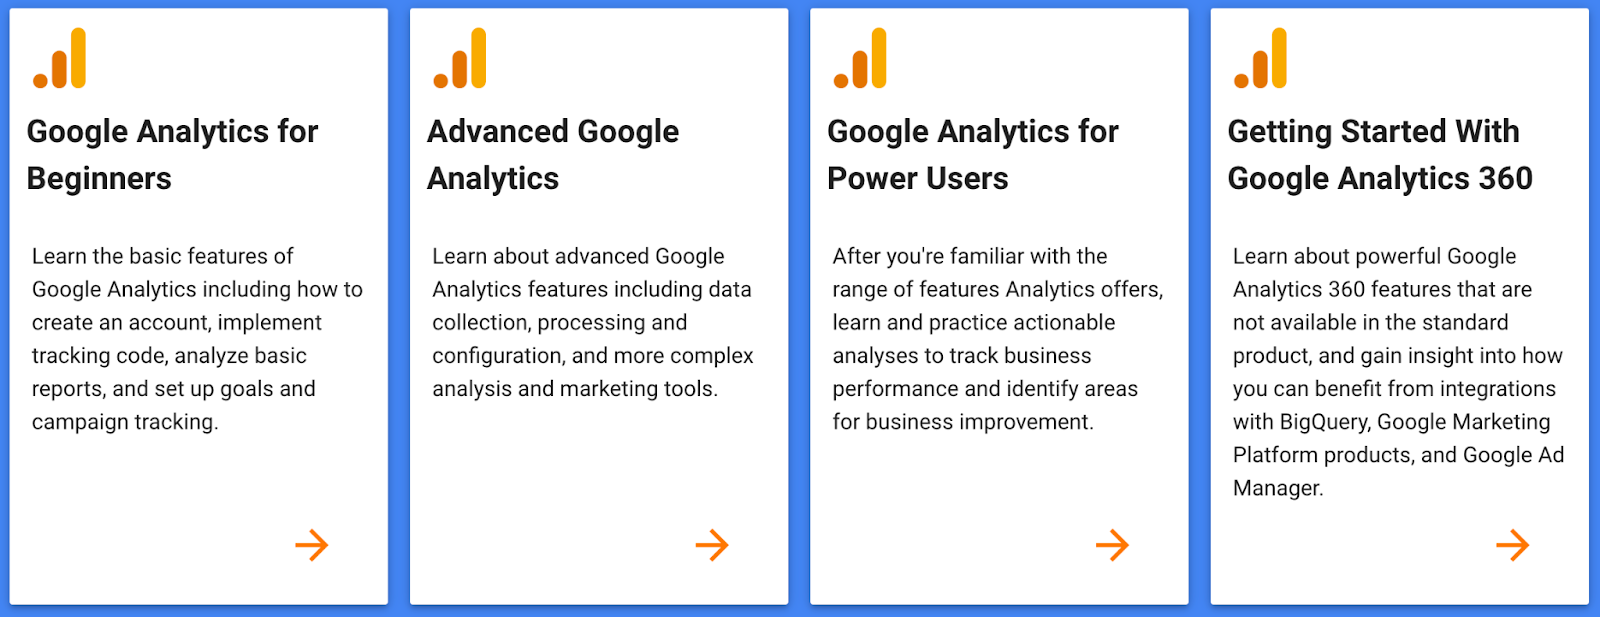 Different courses available on the free Google Analytics Academy platform. From beginner to advanced and power users.